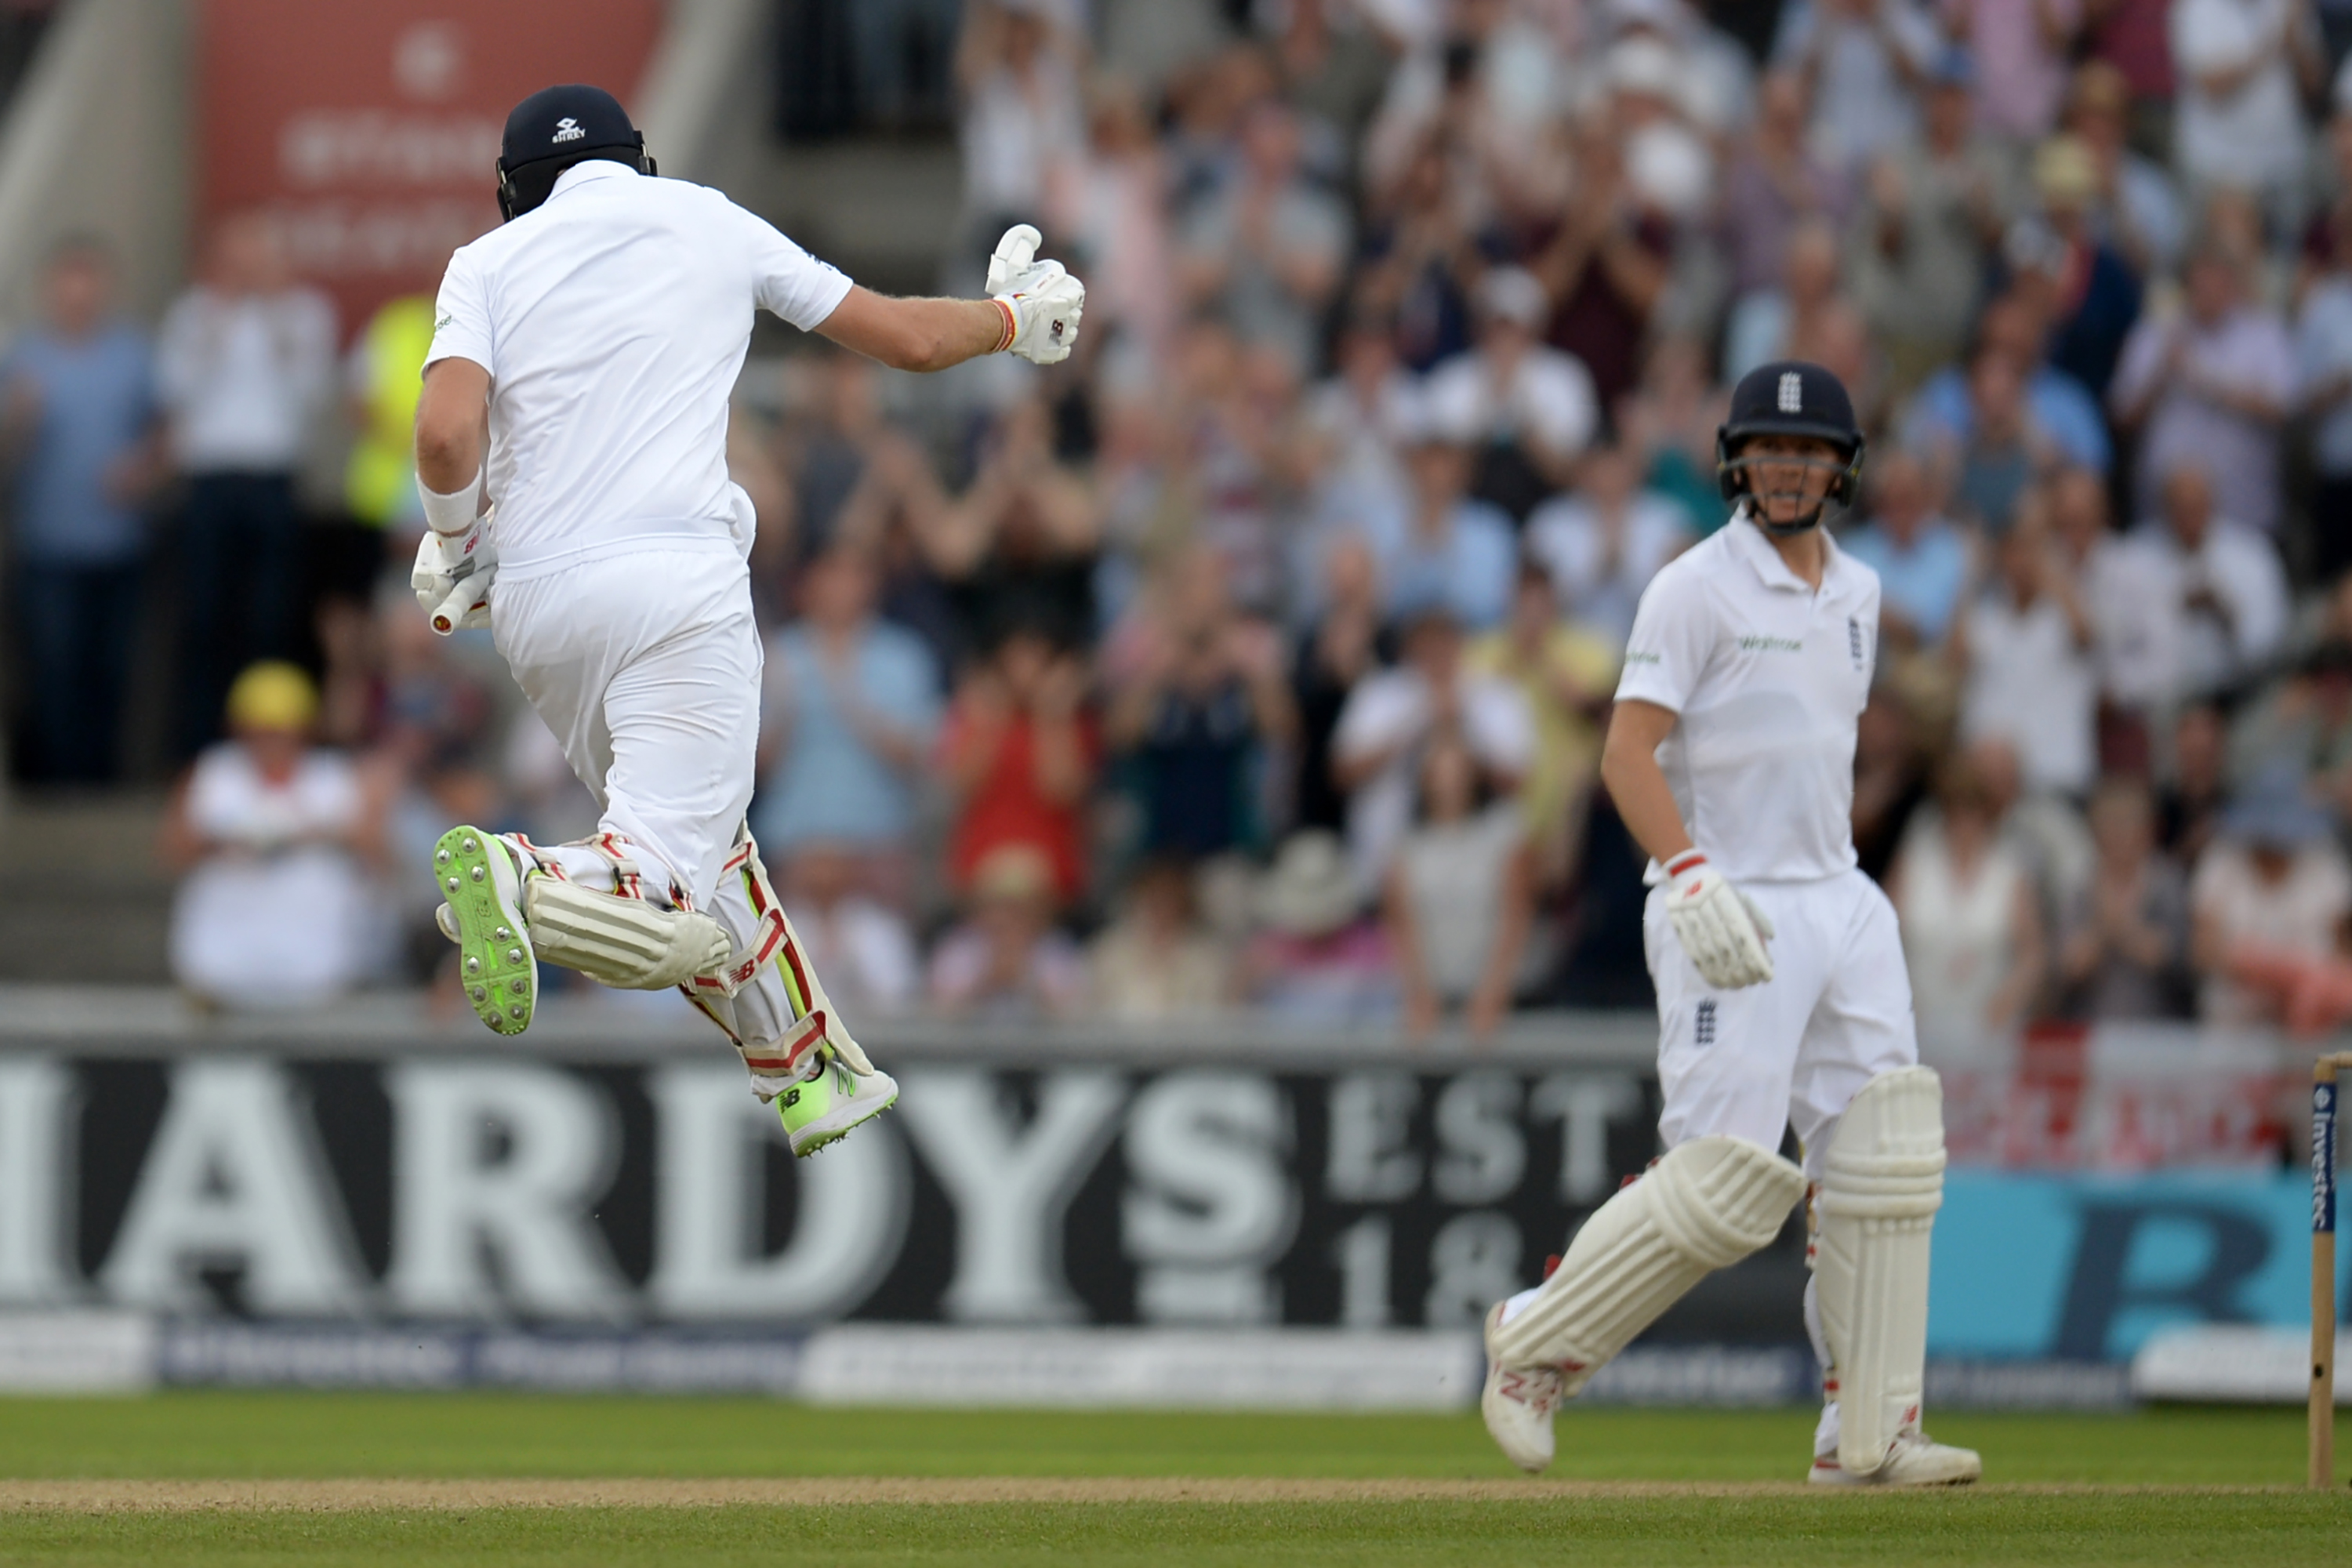 England's Joe Root (L) celebrates as he reaches his century on the first day of the second Test cricket match between England and Pakistan at Old Trafford Cricket Ground in Manchester, north west England on July 22, 2016. / AFP PHOTO / OLI SCARFF